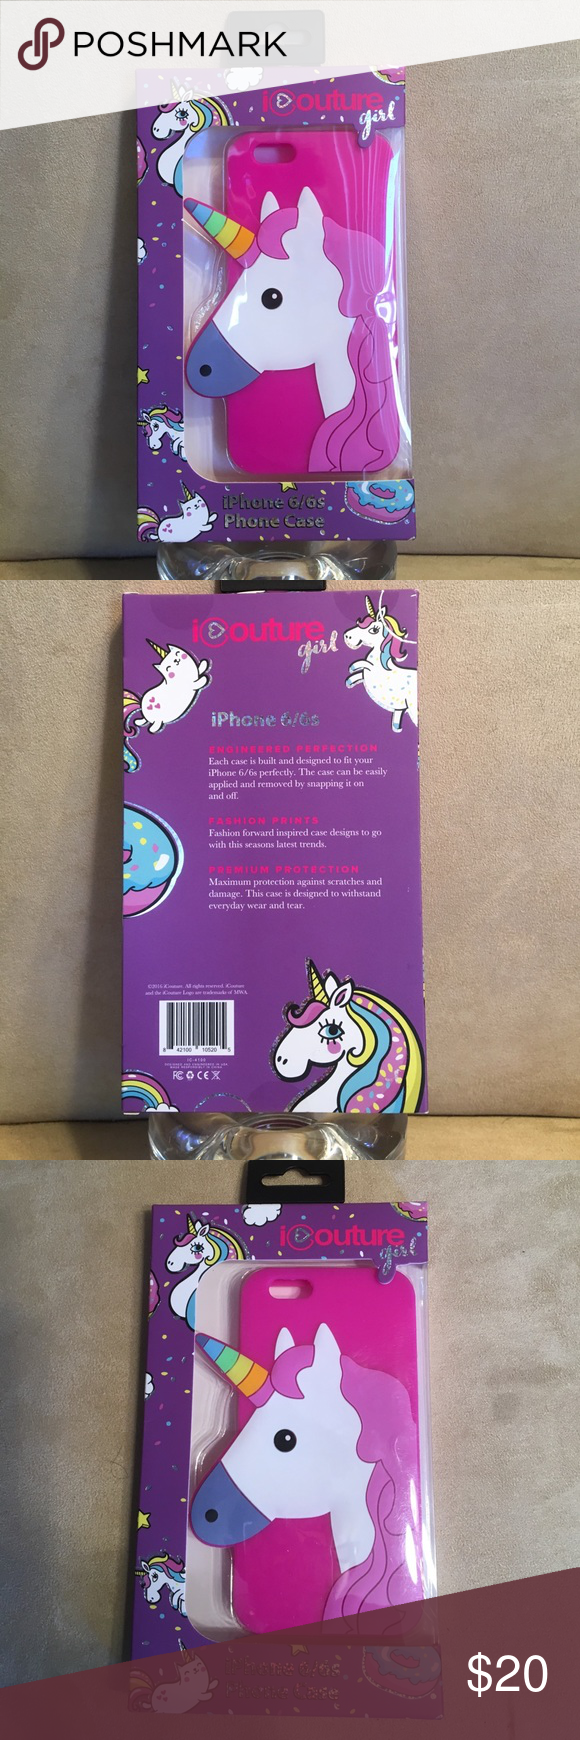 UNICORN  I phone 6 6s phone case. Super fun Unicorn I phone 6 6s phone case.  All the colors on this case make is so beautiful.  What a fun design.  For all you Unicorn  lovers out there, this is a rare find.  This is brand new with out tags.  ❤️️ Accessories Phone Cases